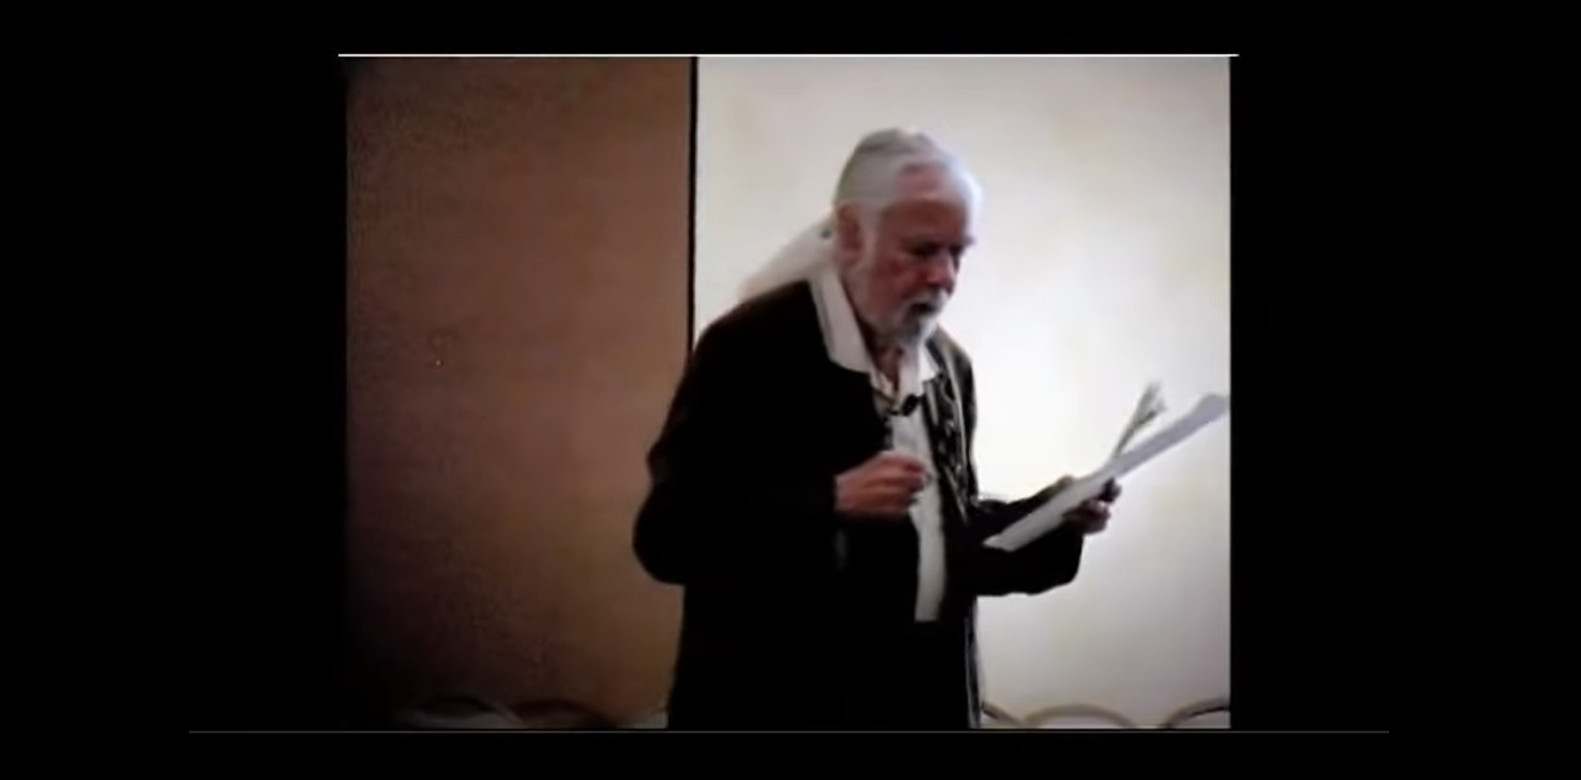 """Bob Dean - Conférence Project Camelot """"Awake and Aware"""" 2009 VOSTFR"""